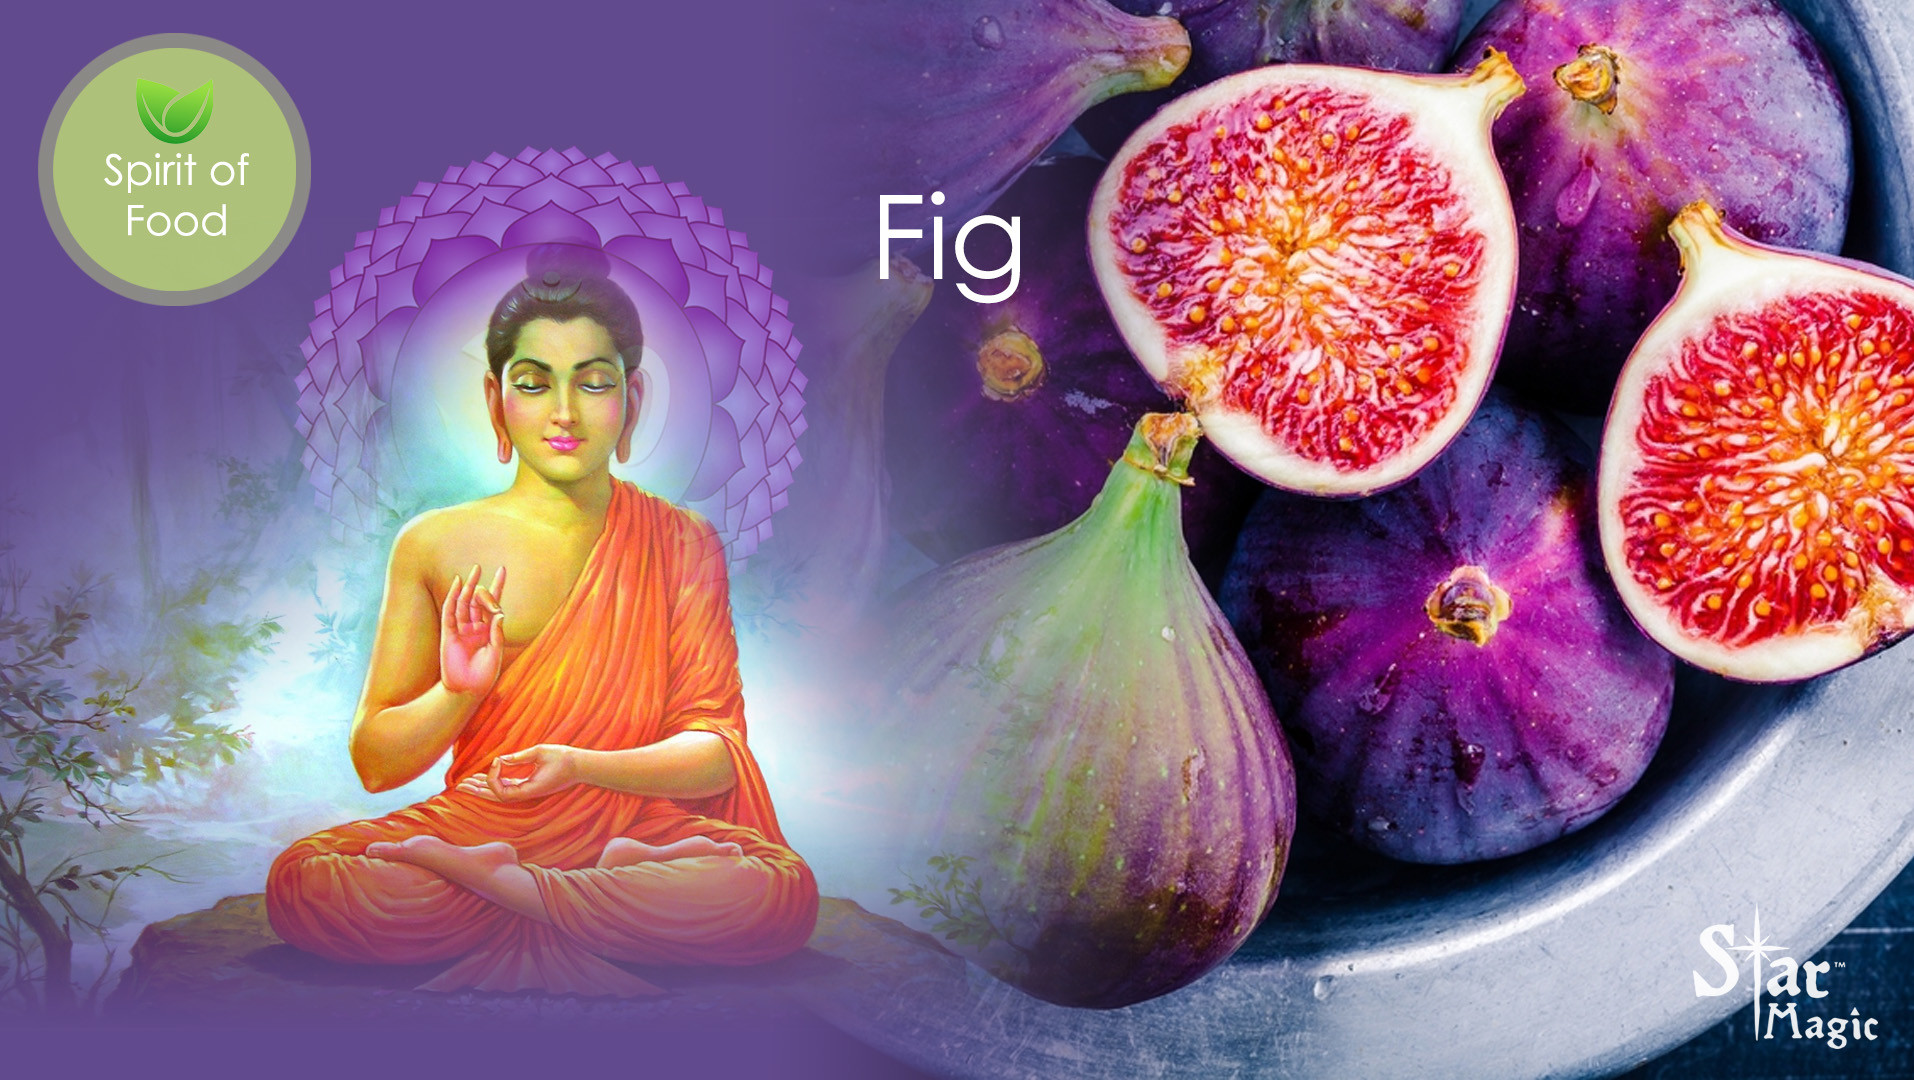 Spirit of food - Fig